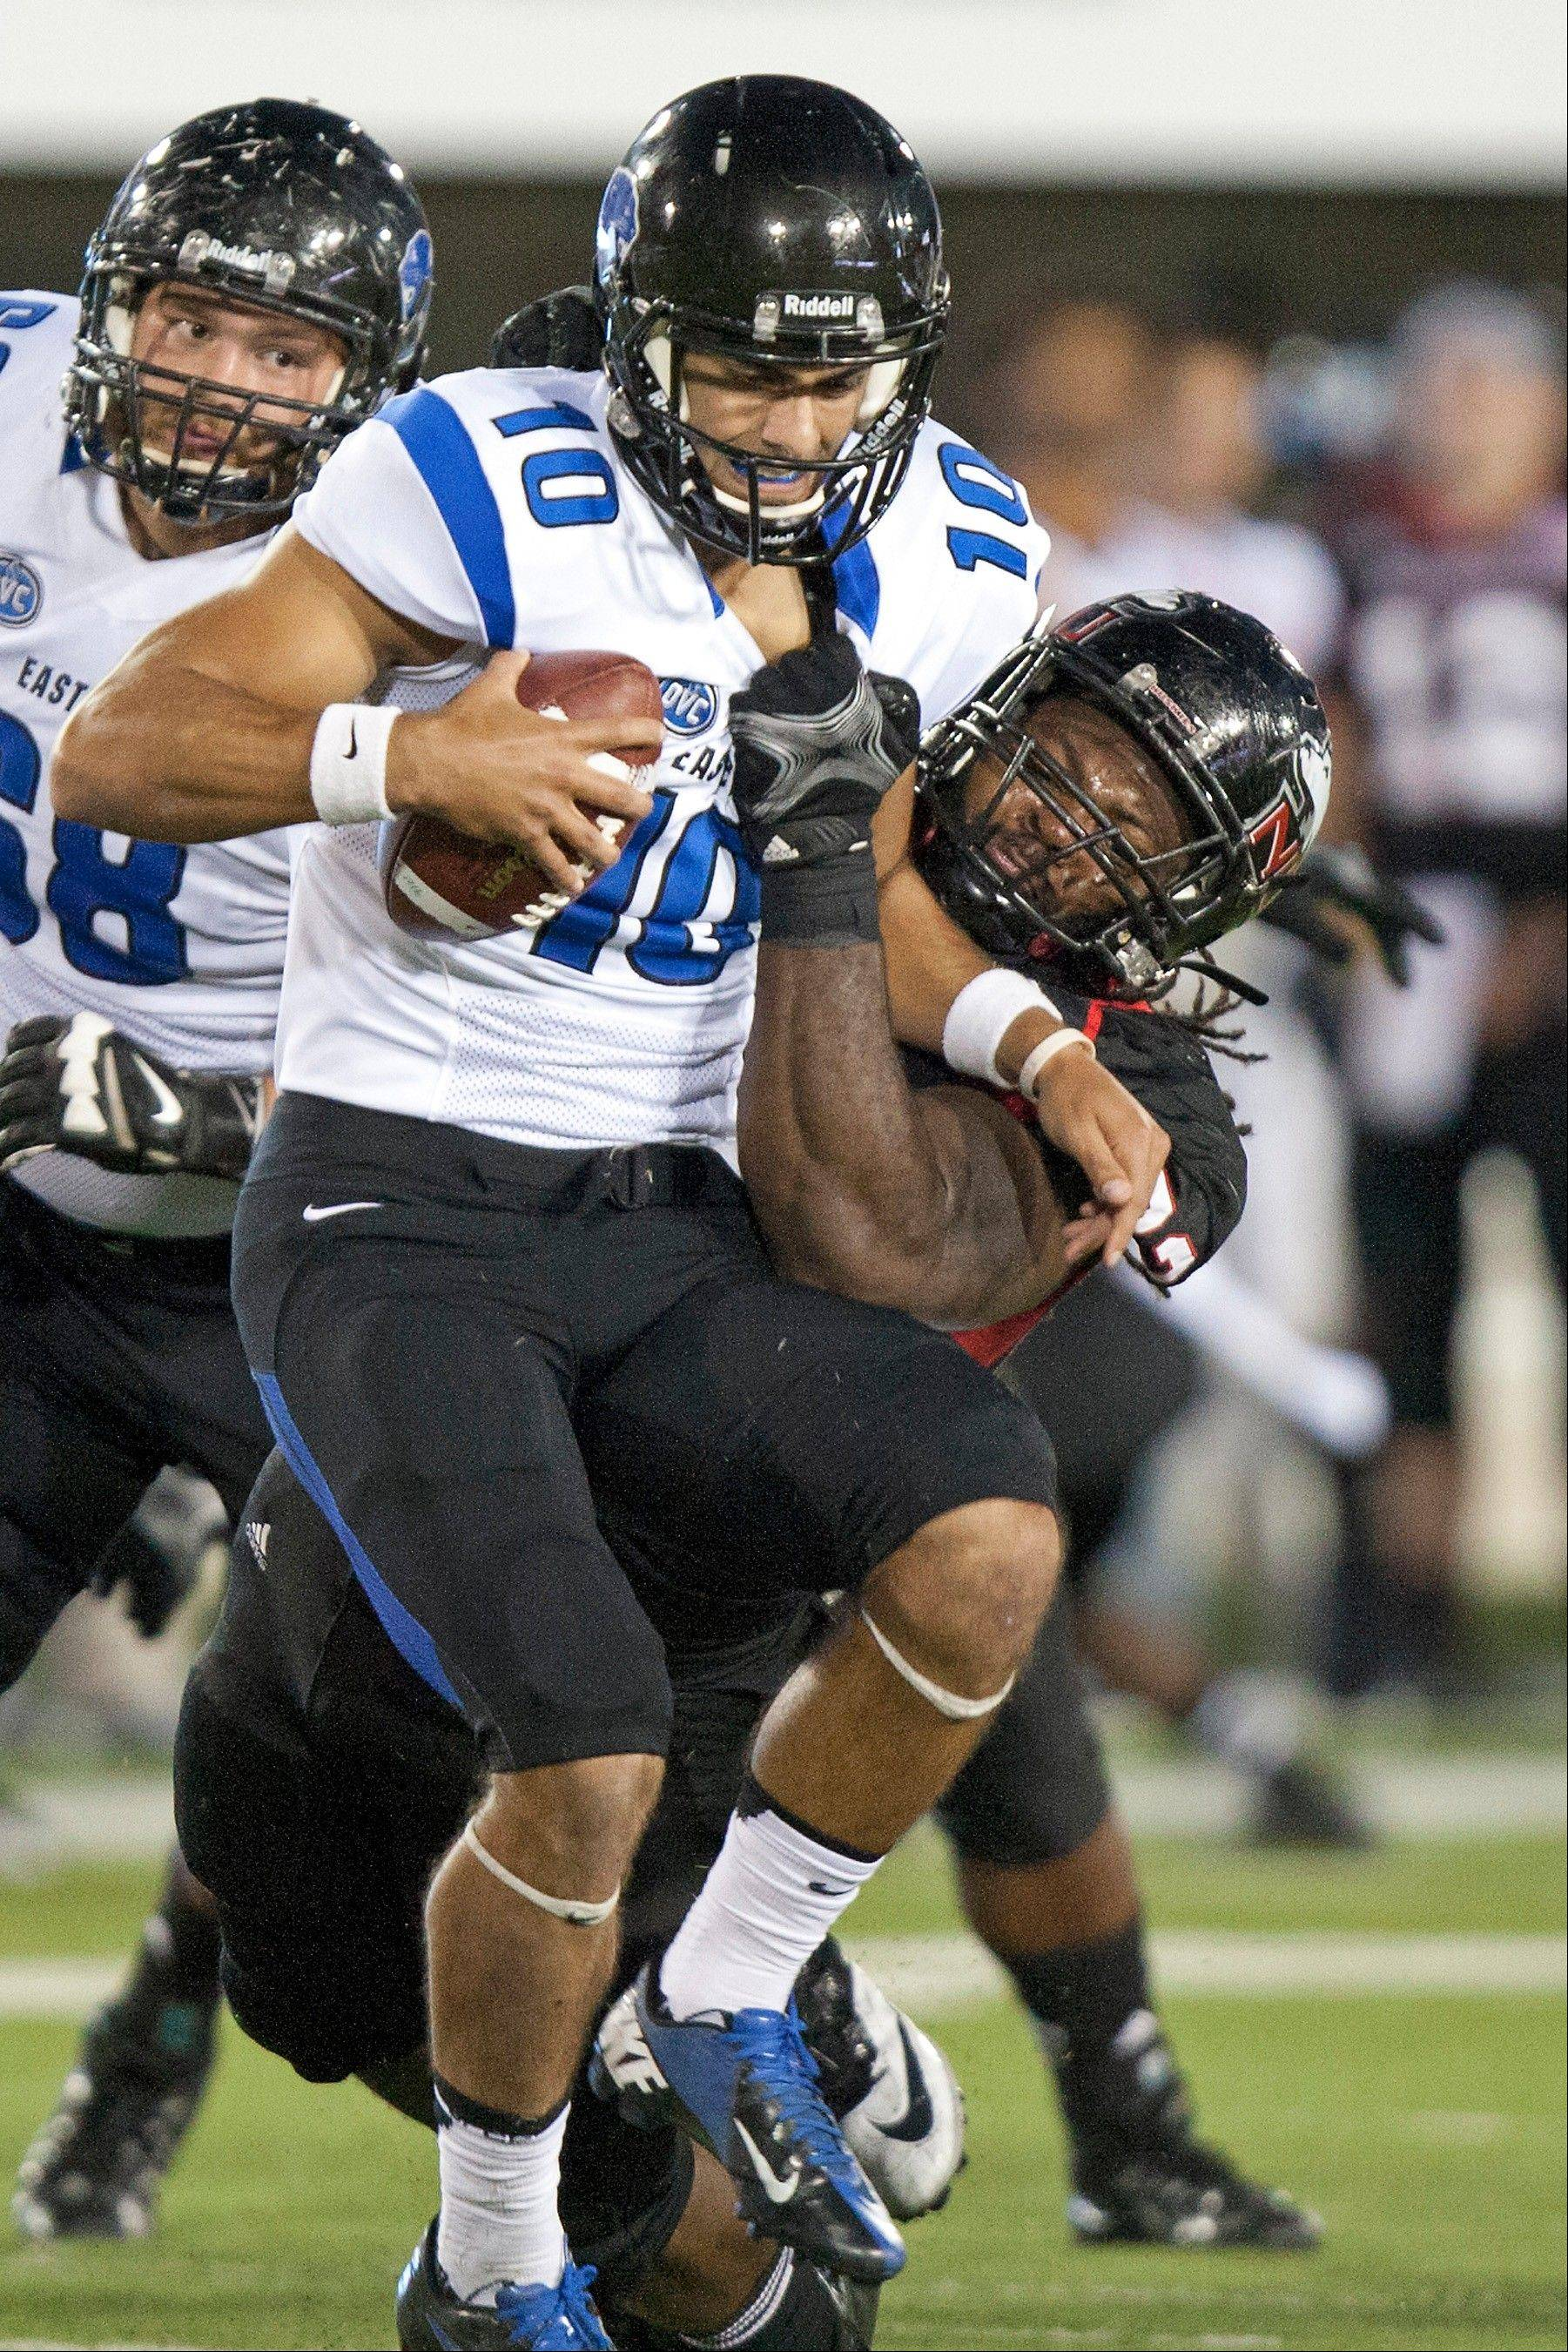 NIU not alarmed by defense's performance